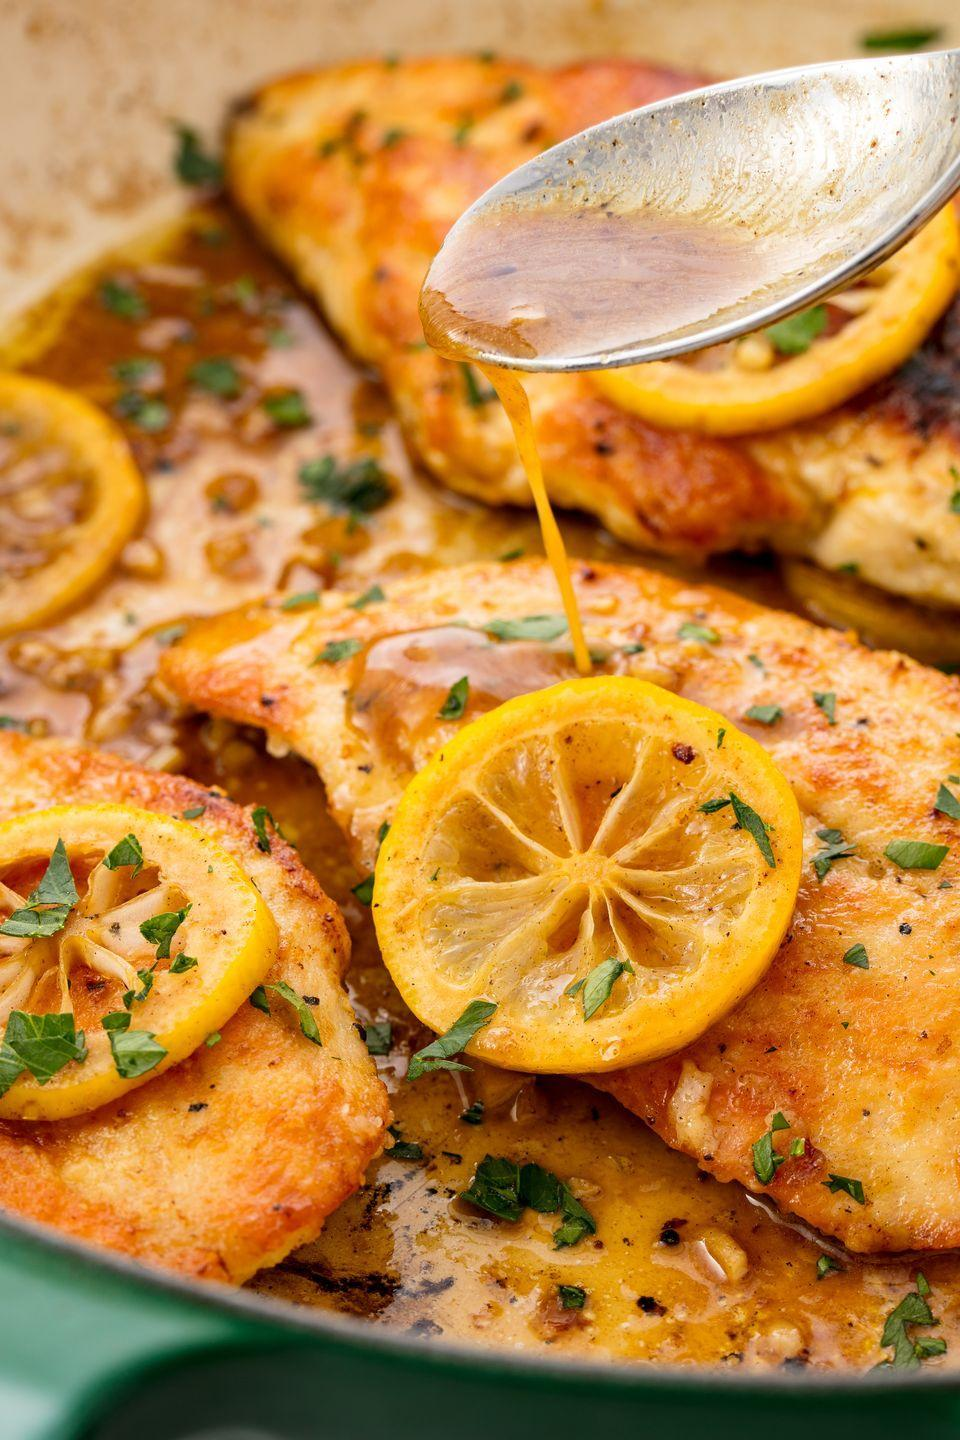 "<p>This lemon pepper chicken makes chicken exciting again.</p><p>Get the recipe from <a href=""https://www.delish.com/cooking/recipe-ideas/recipes/a55218/lemon-pepper-baked-chicken-breast-recipe/"" rel=""nofollow noopener"" target=""_blank"" data-ylk=""slk:Delish"" class=""link rapid-noclick-resp"">Delish</a>.</p>"